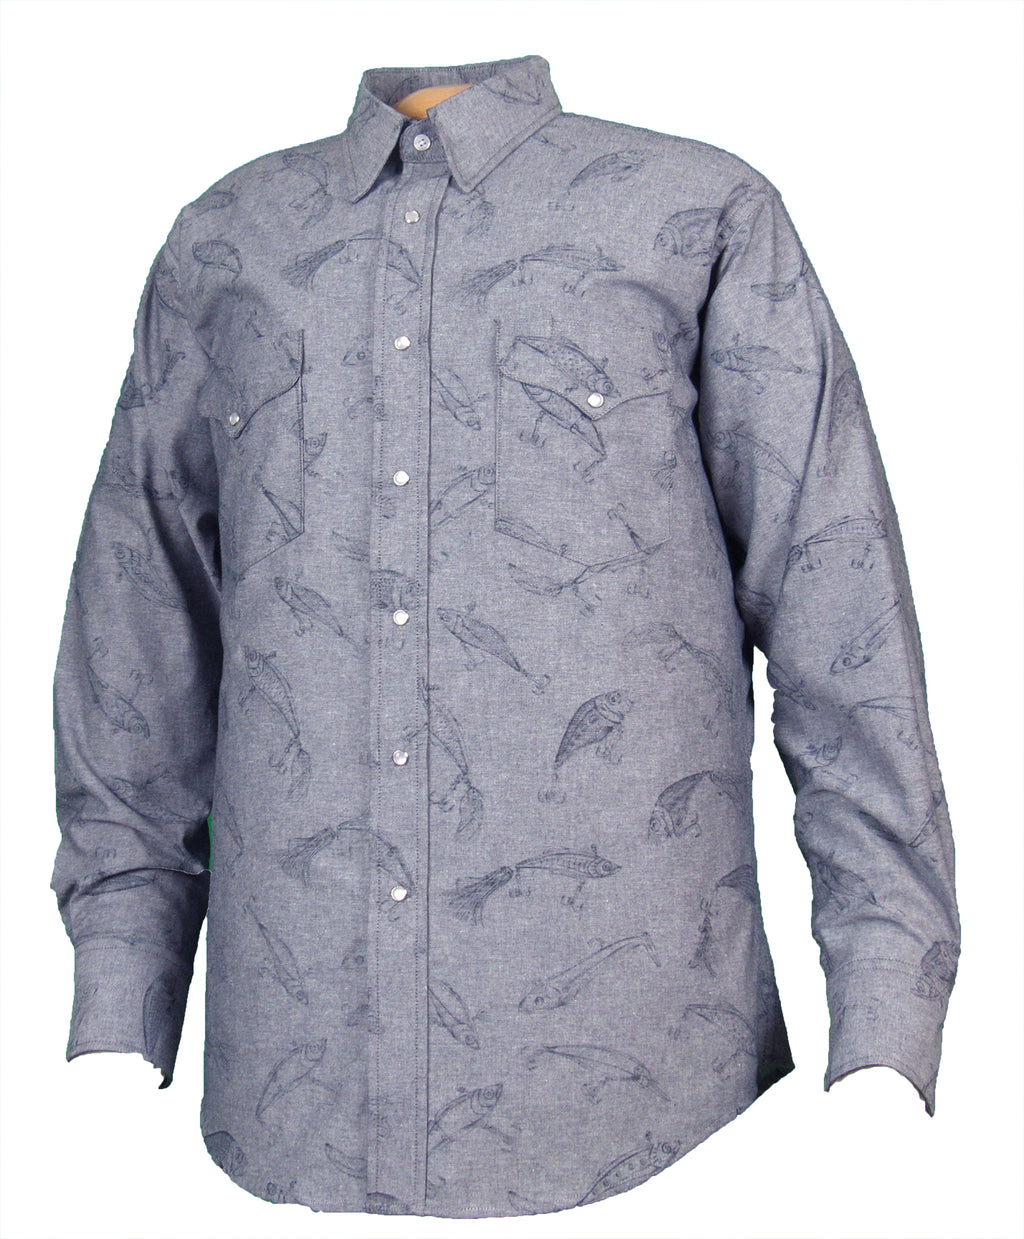 Fiesta Prints Reverse Lure Long Sleeve - snaps - FINAL MARKDOWN - $29.95